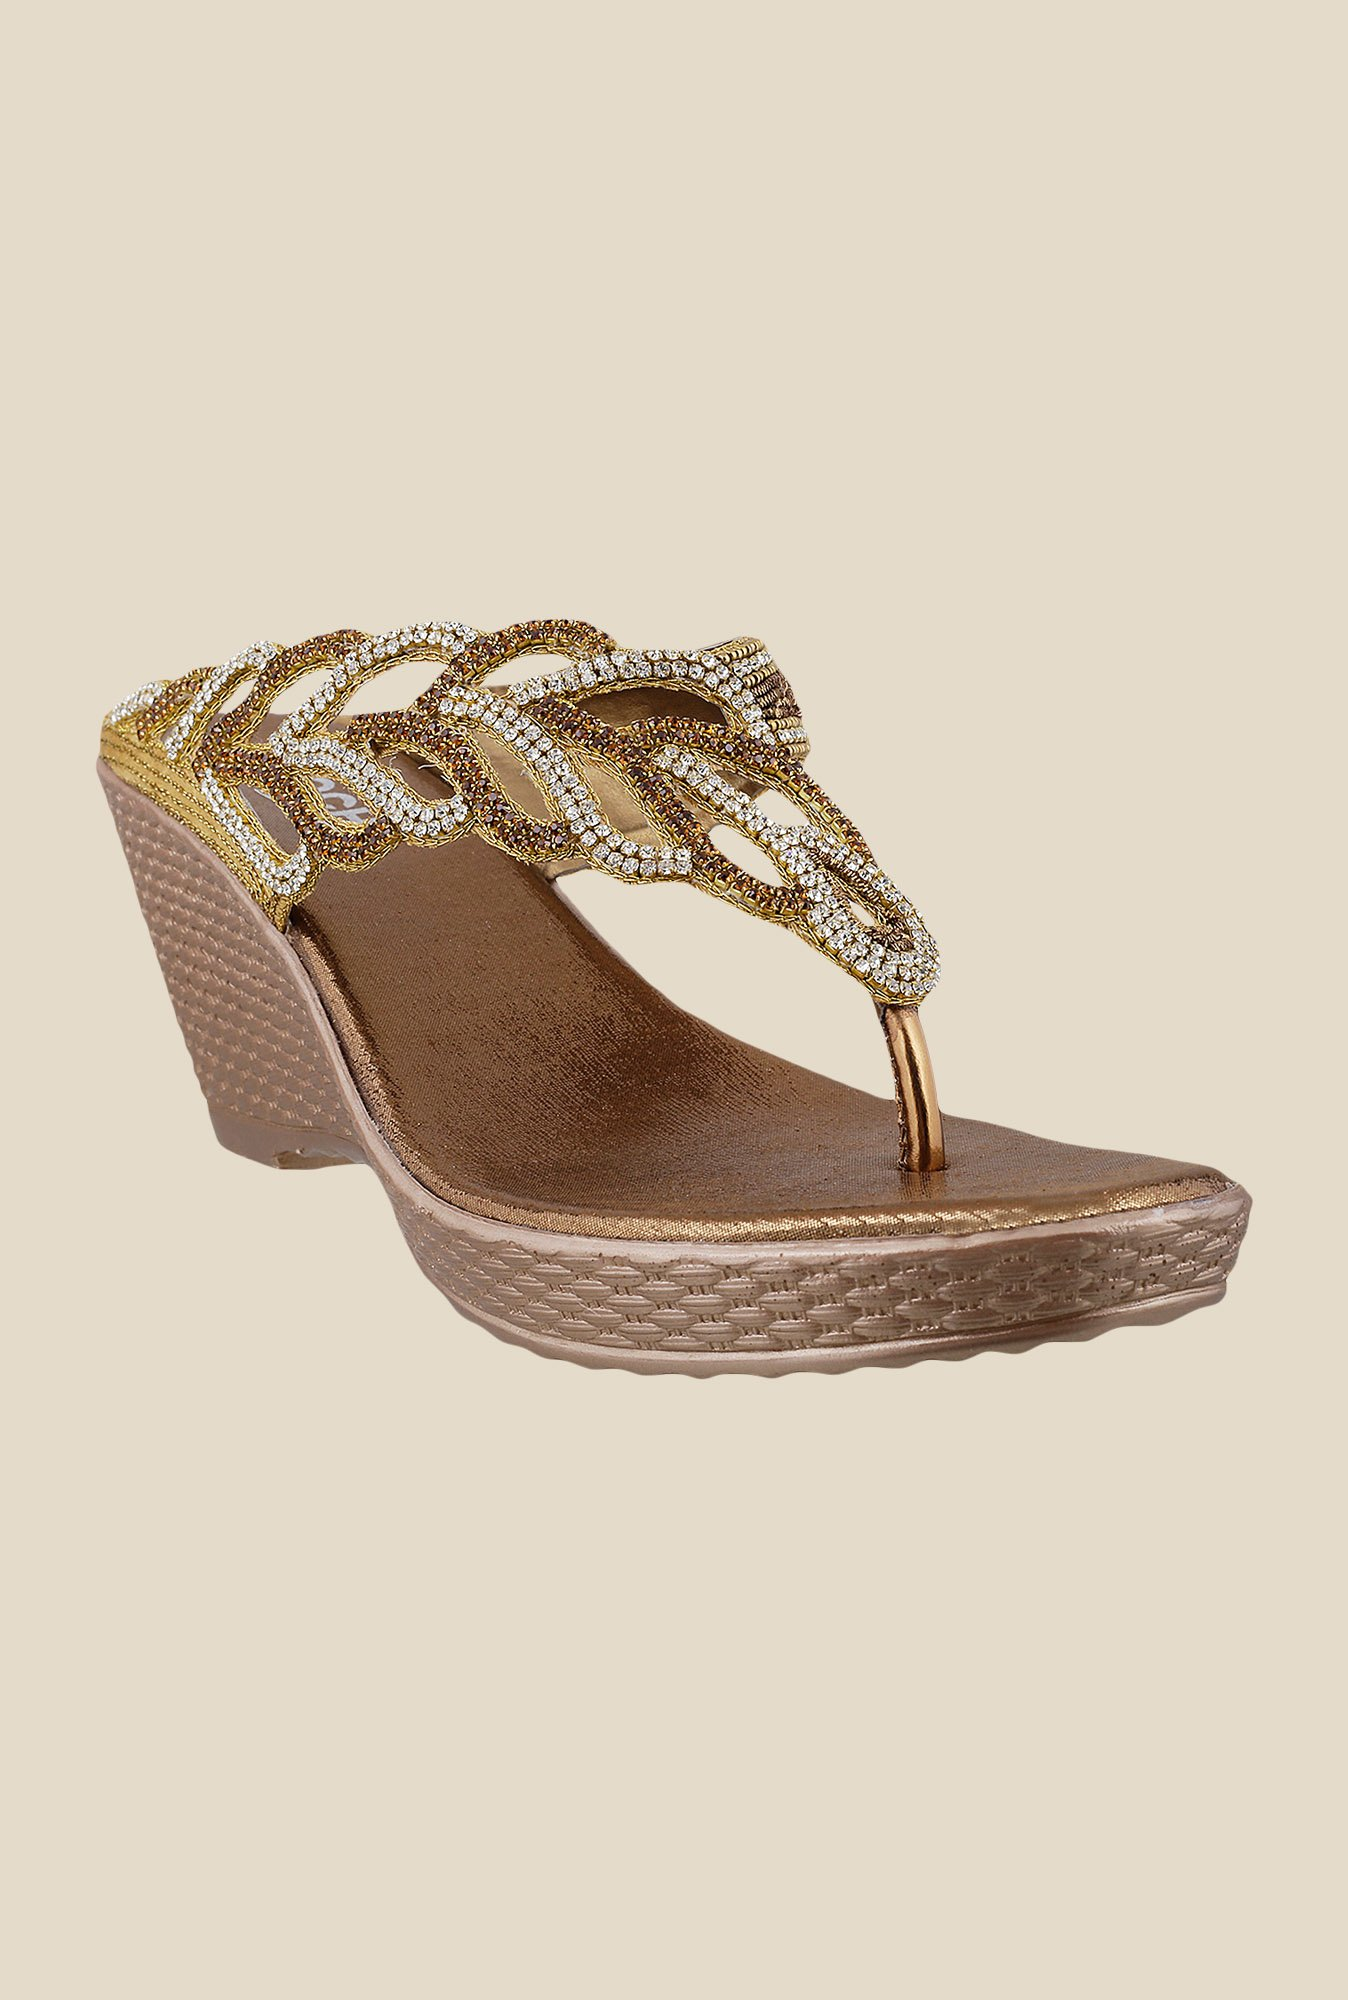 Mochi Antique Gold Wedge Heeled Sandals